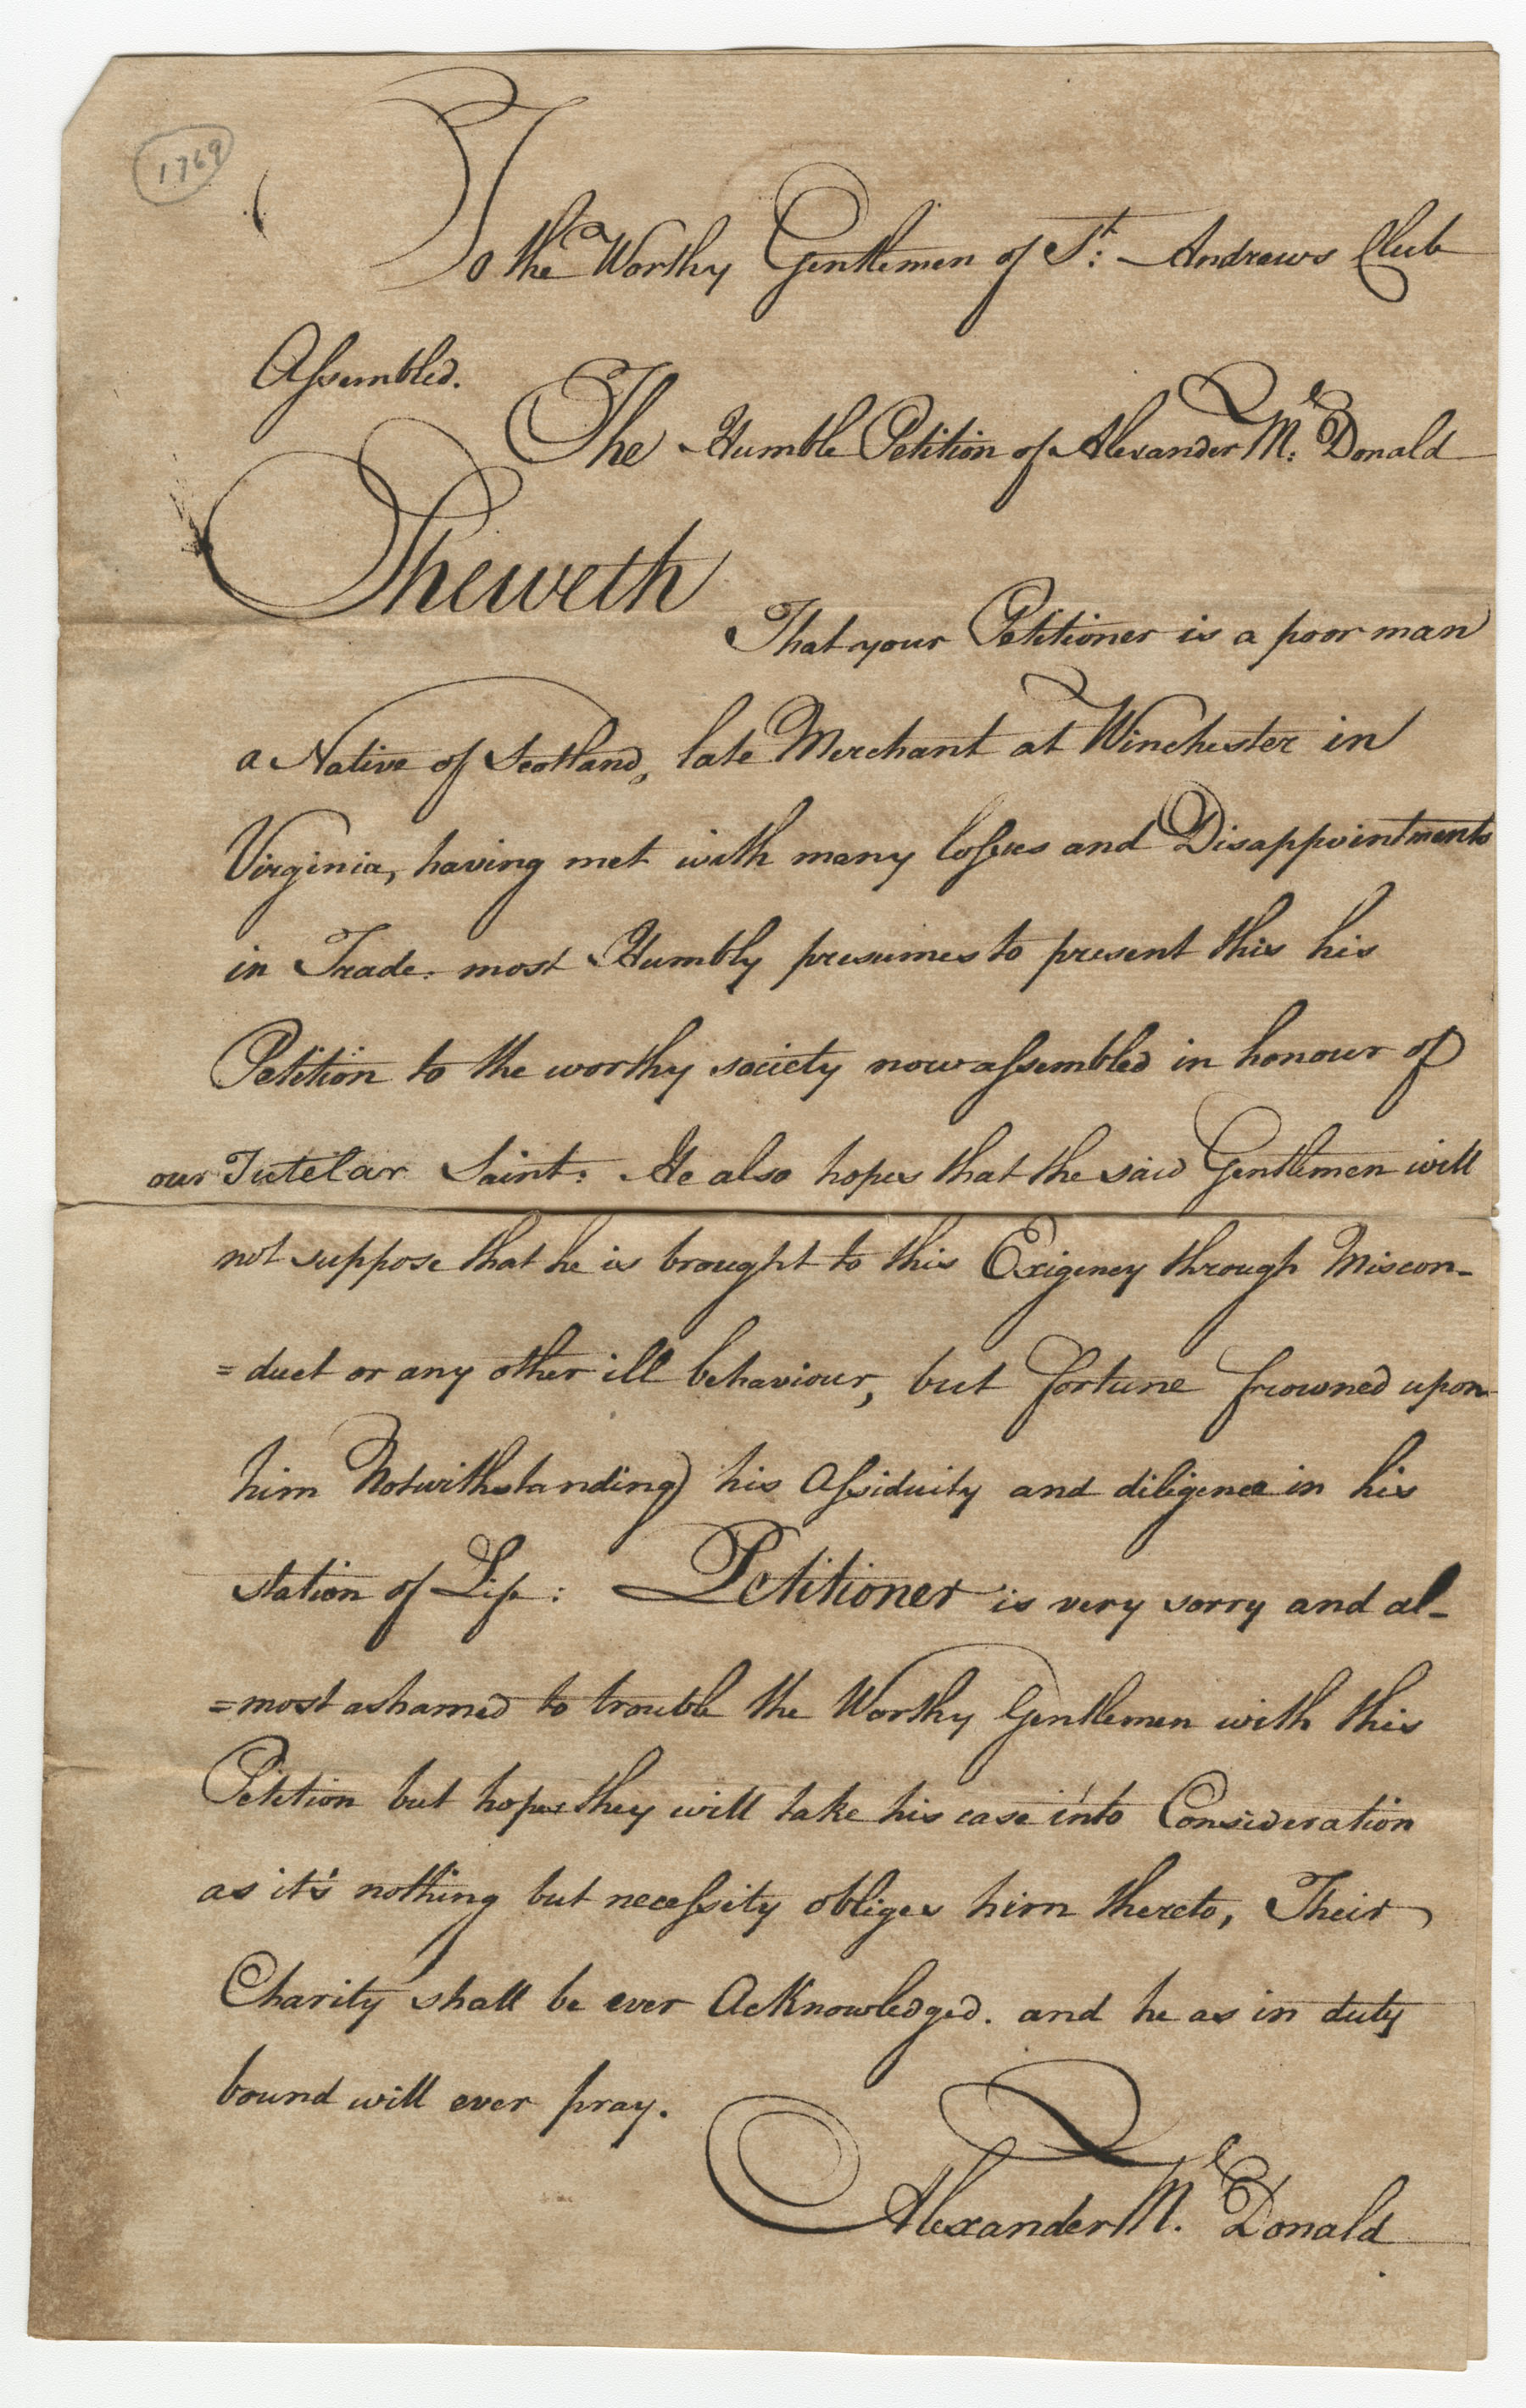 Petition from Alexander McDonald to the St. Andrew's Society